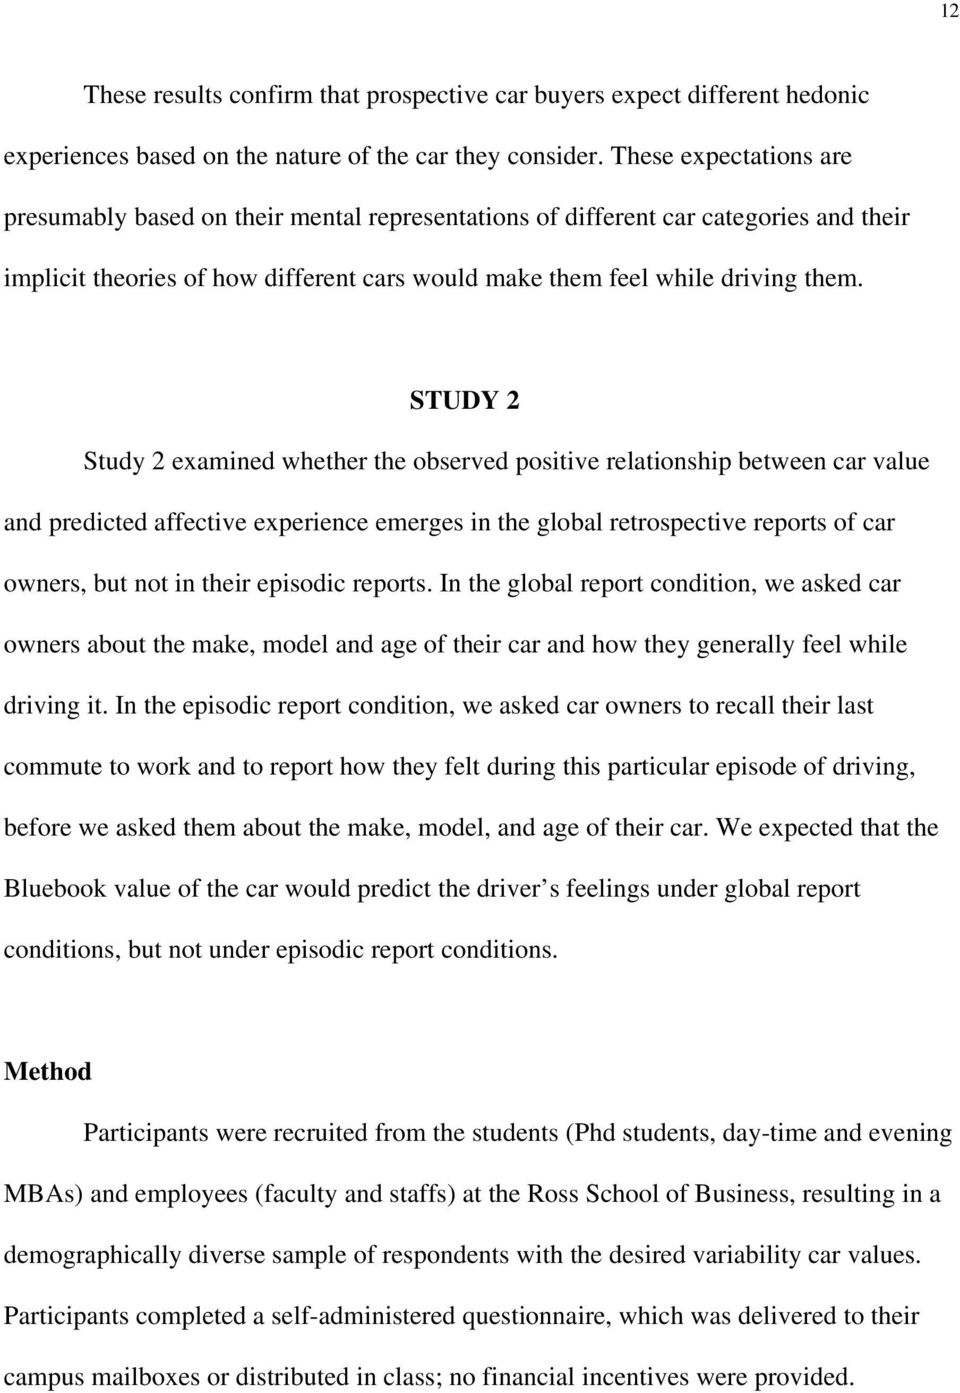 STUDY 2 Study 2 examined whether the observed positive relationship between car value and predicted affective experience emerges in the global retrospective reports of car owners, but not in their